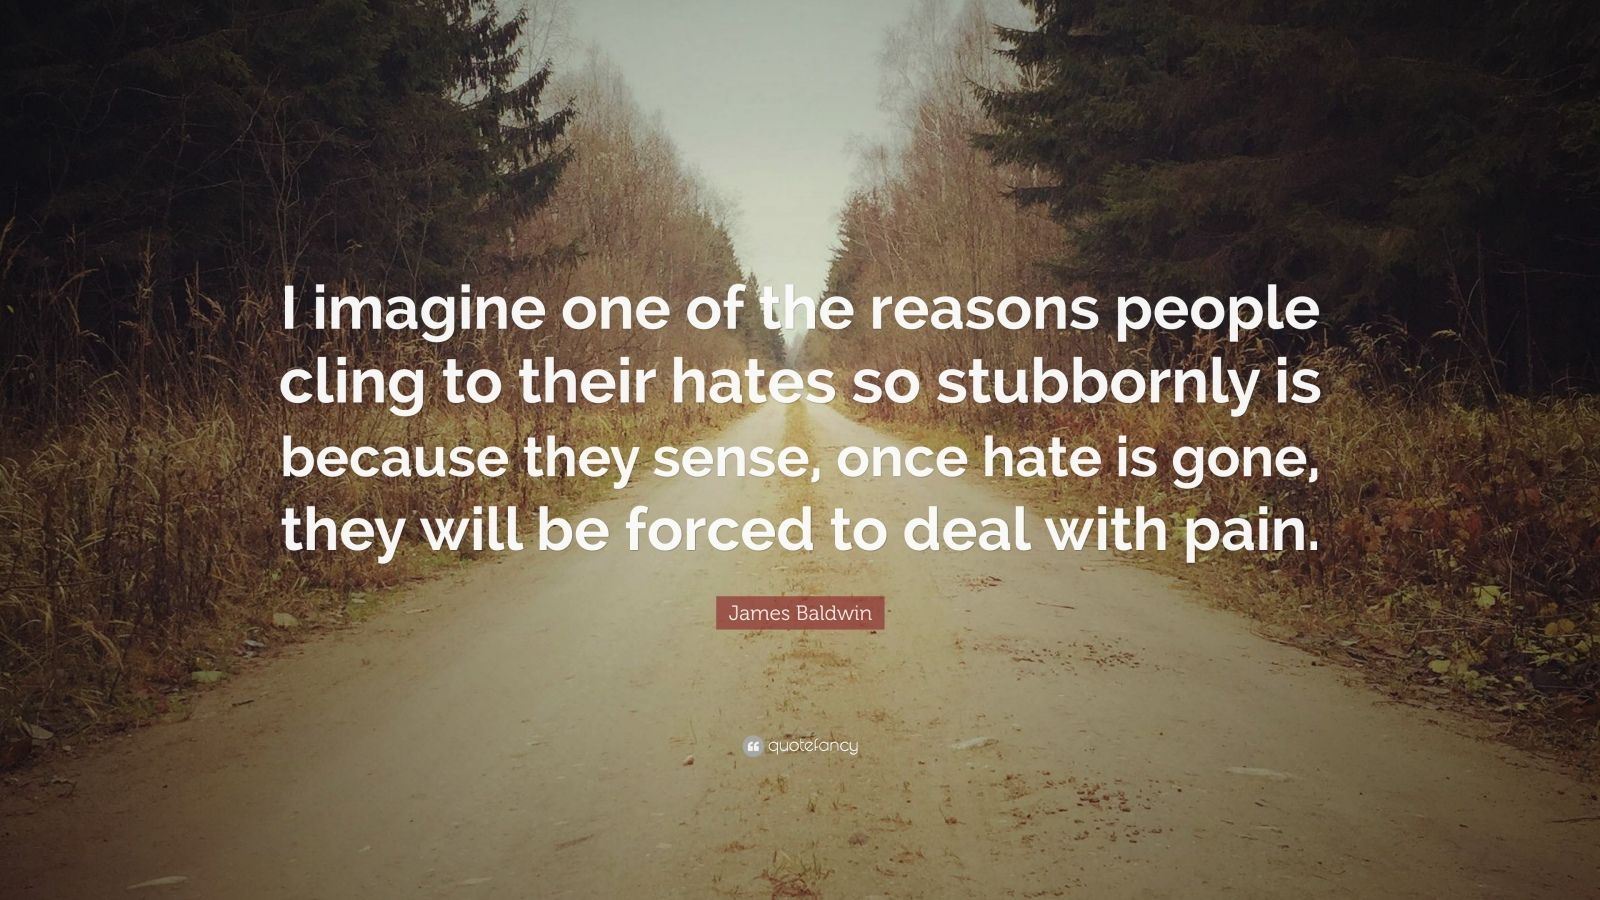 """James Baldwin Quote: """"I imagine one of the reasons people cling to their hates so stubbornly is because they sense, once hate is gone, they will be forced to deal with pain."""""""